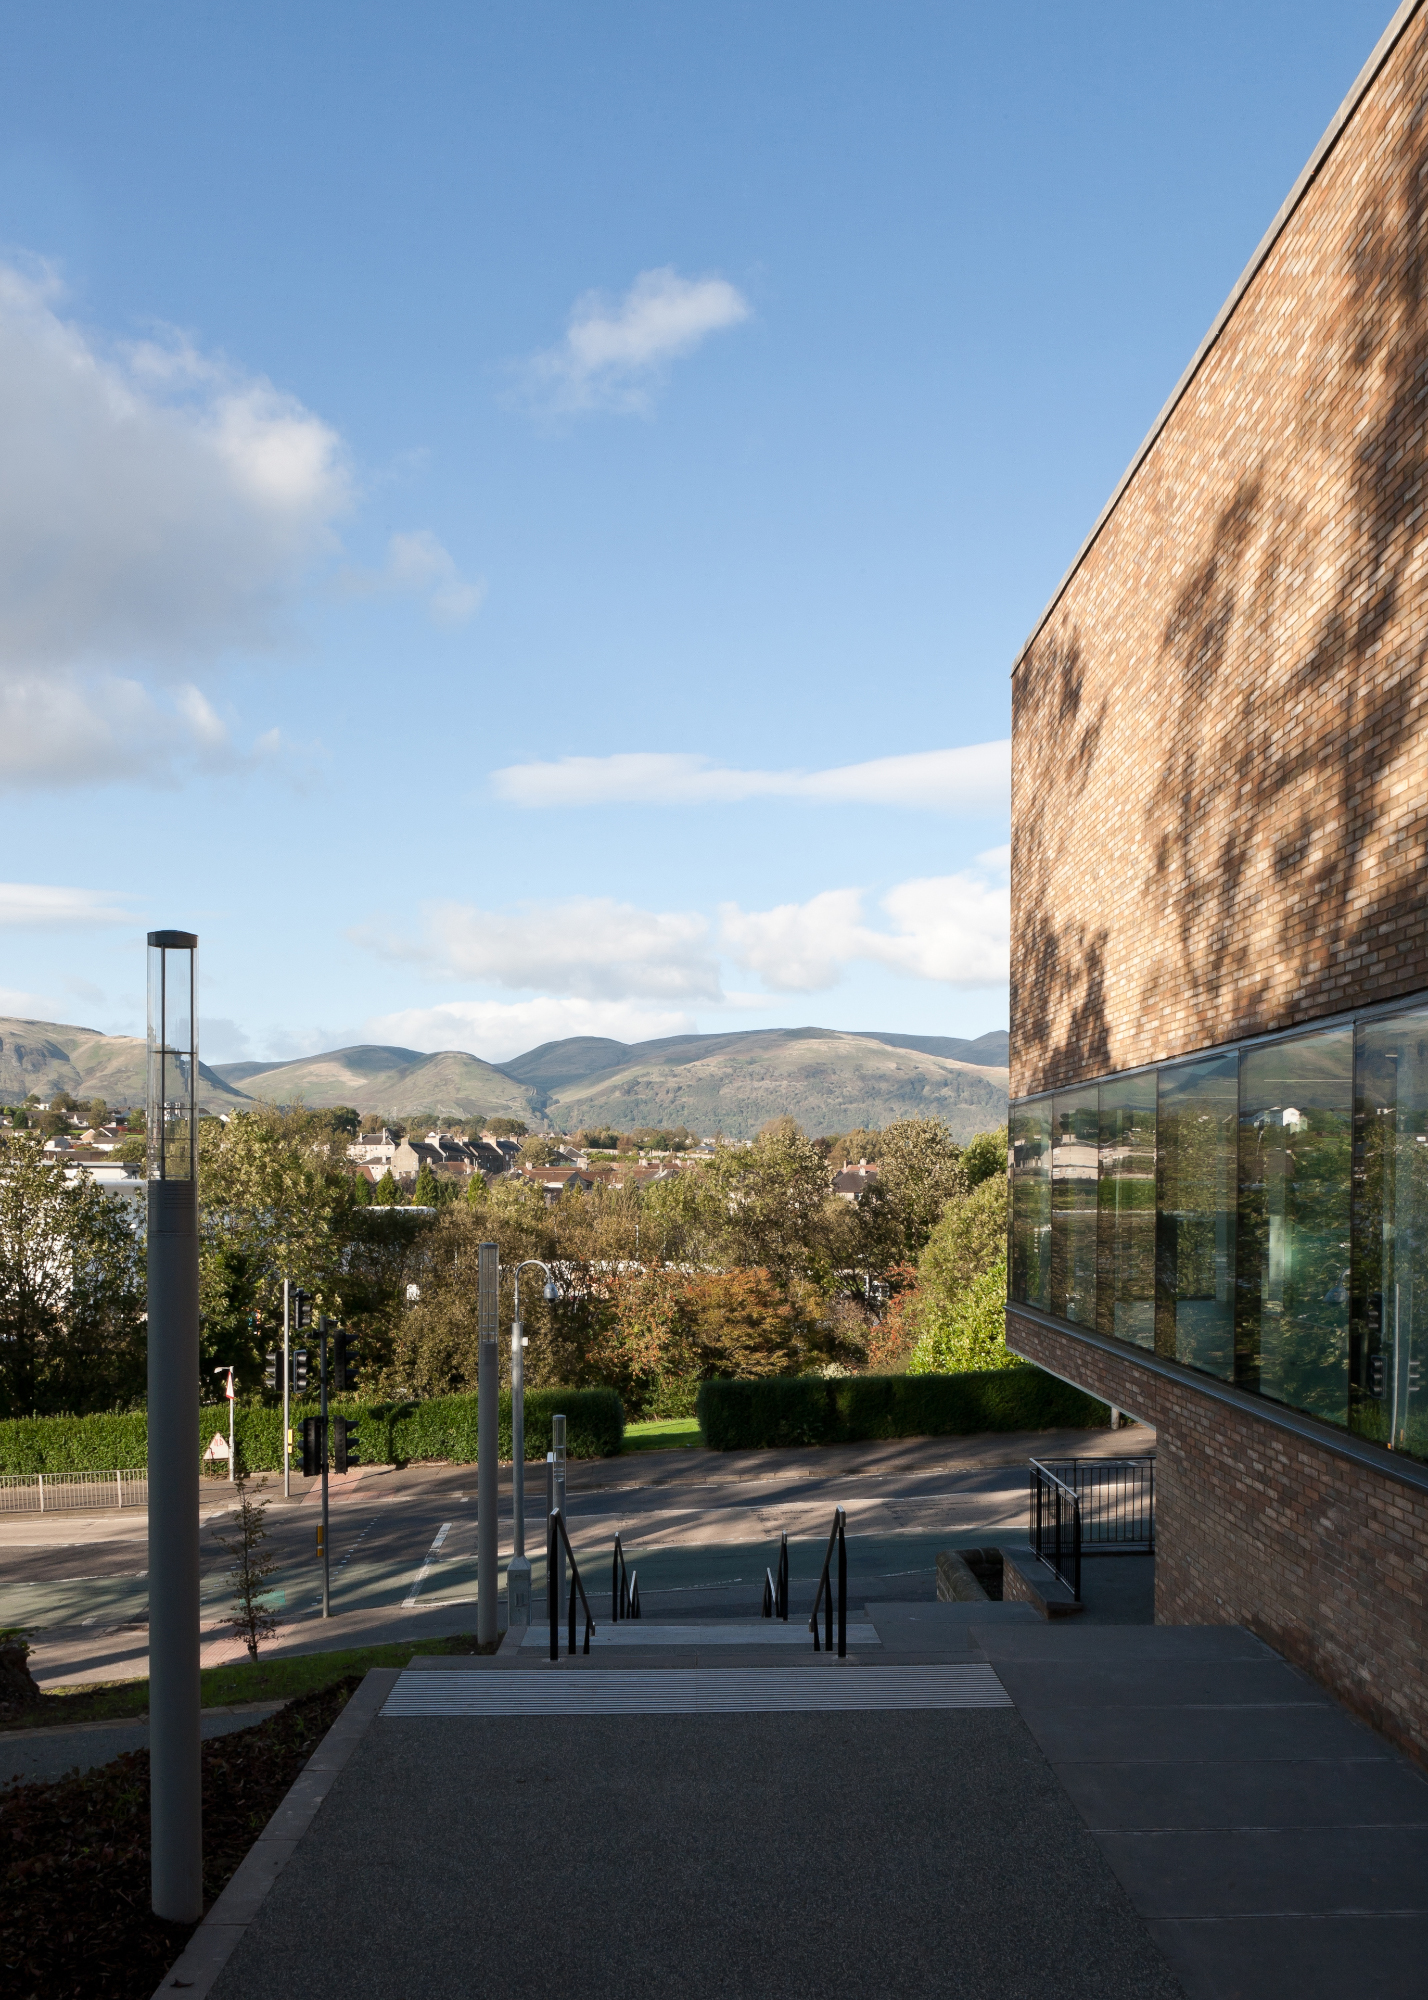 Forth Valley College Alloa